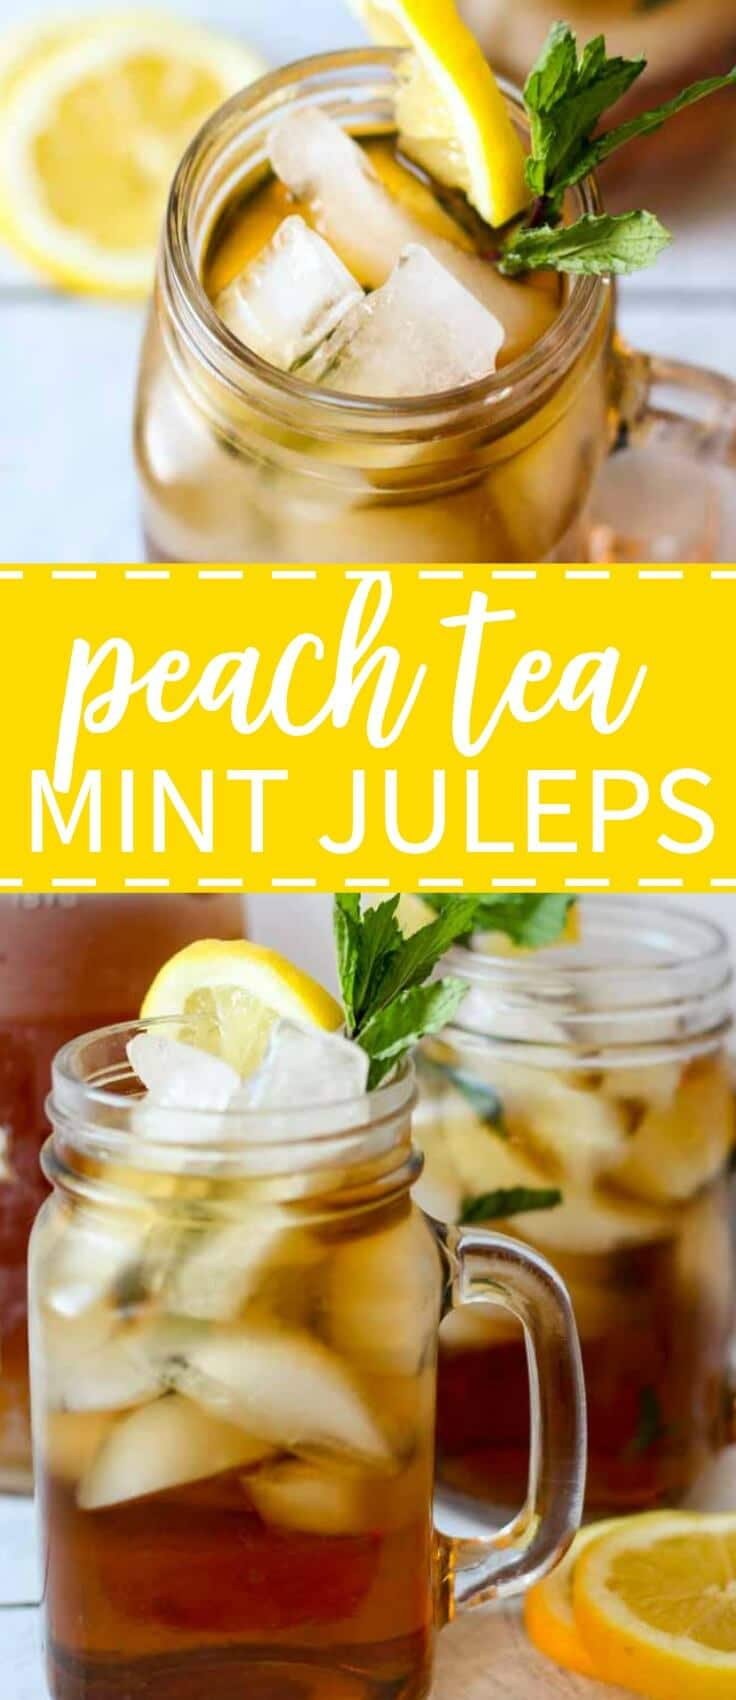 There is not Derby celebration without mint juleps. These mint juleps have a little twist to them with peach tea infused. They're sweet and fresh and the perfect accessory to your big hat!